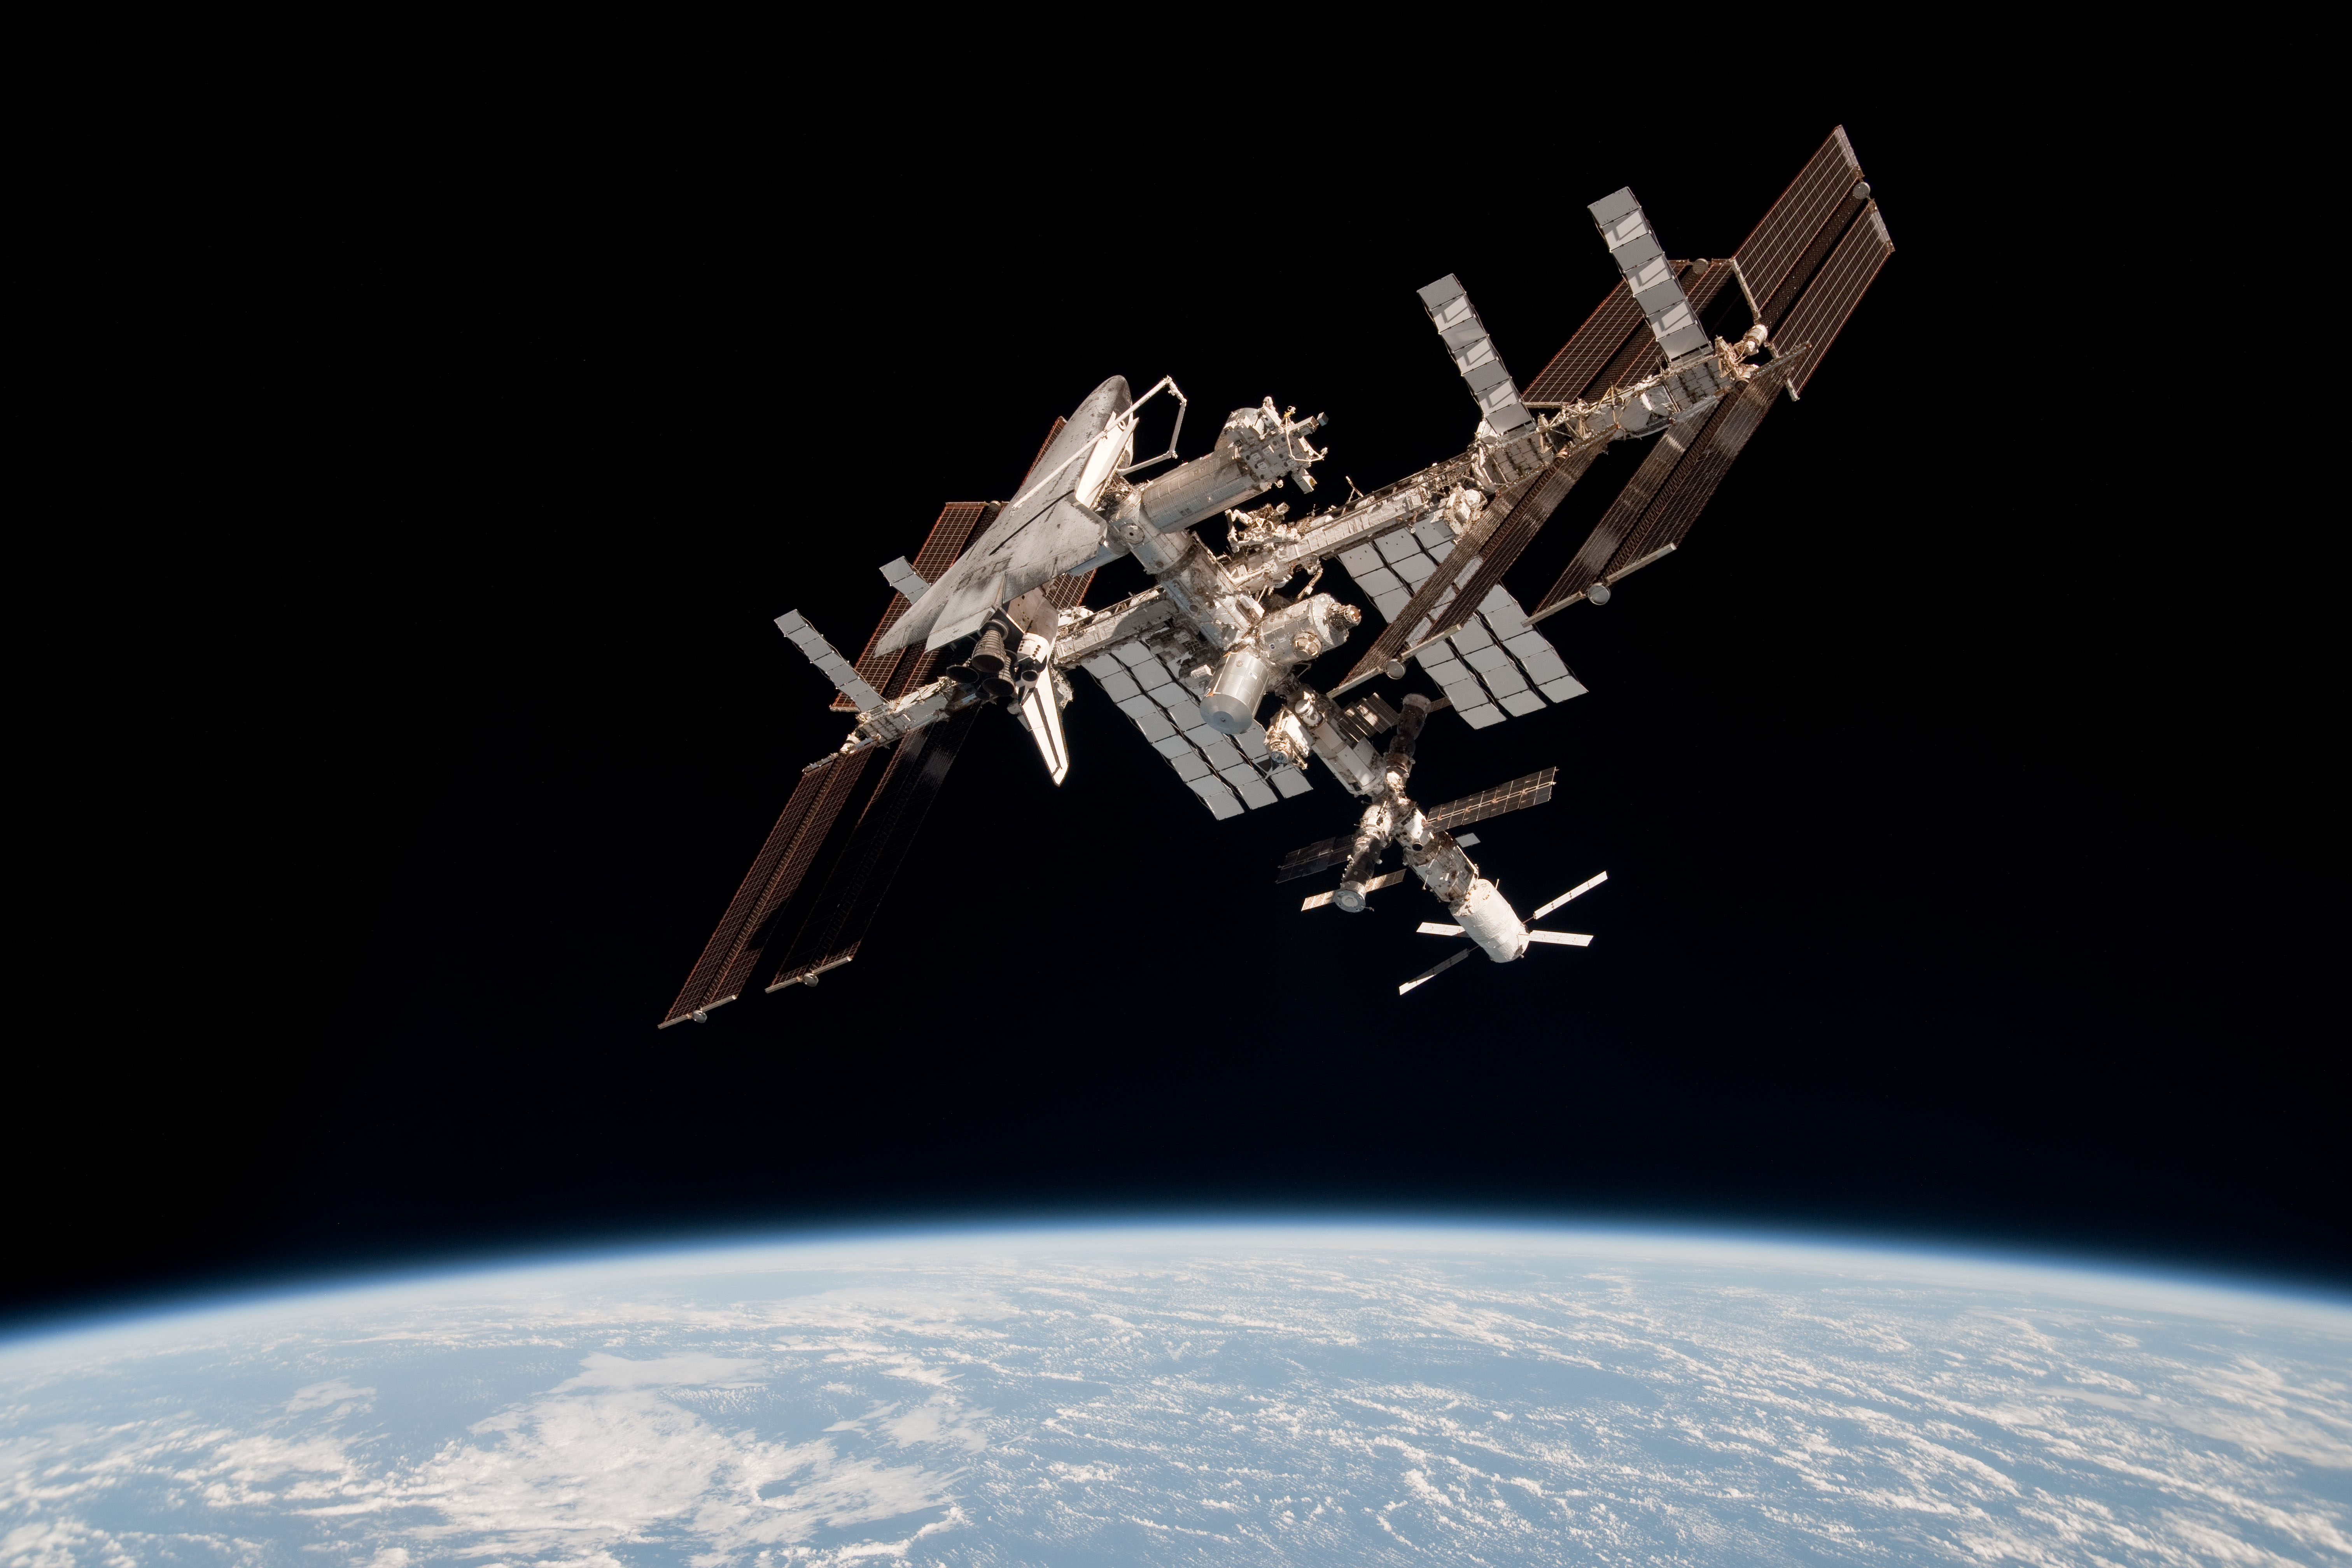 space shuttle iss - photo #17